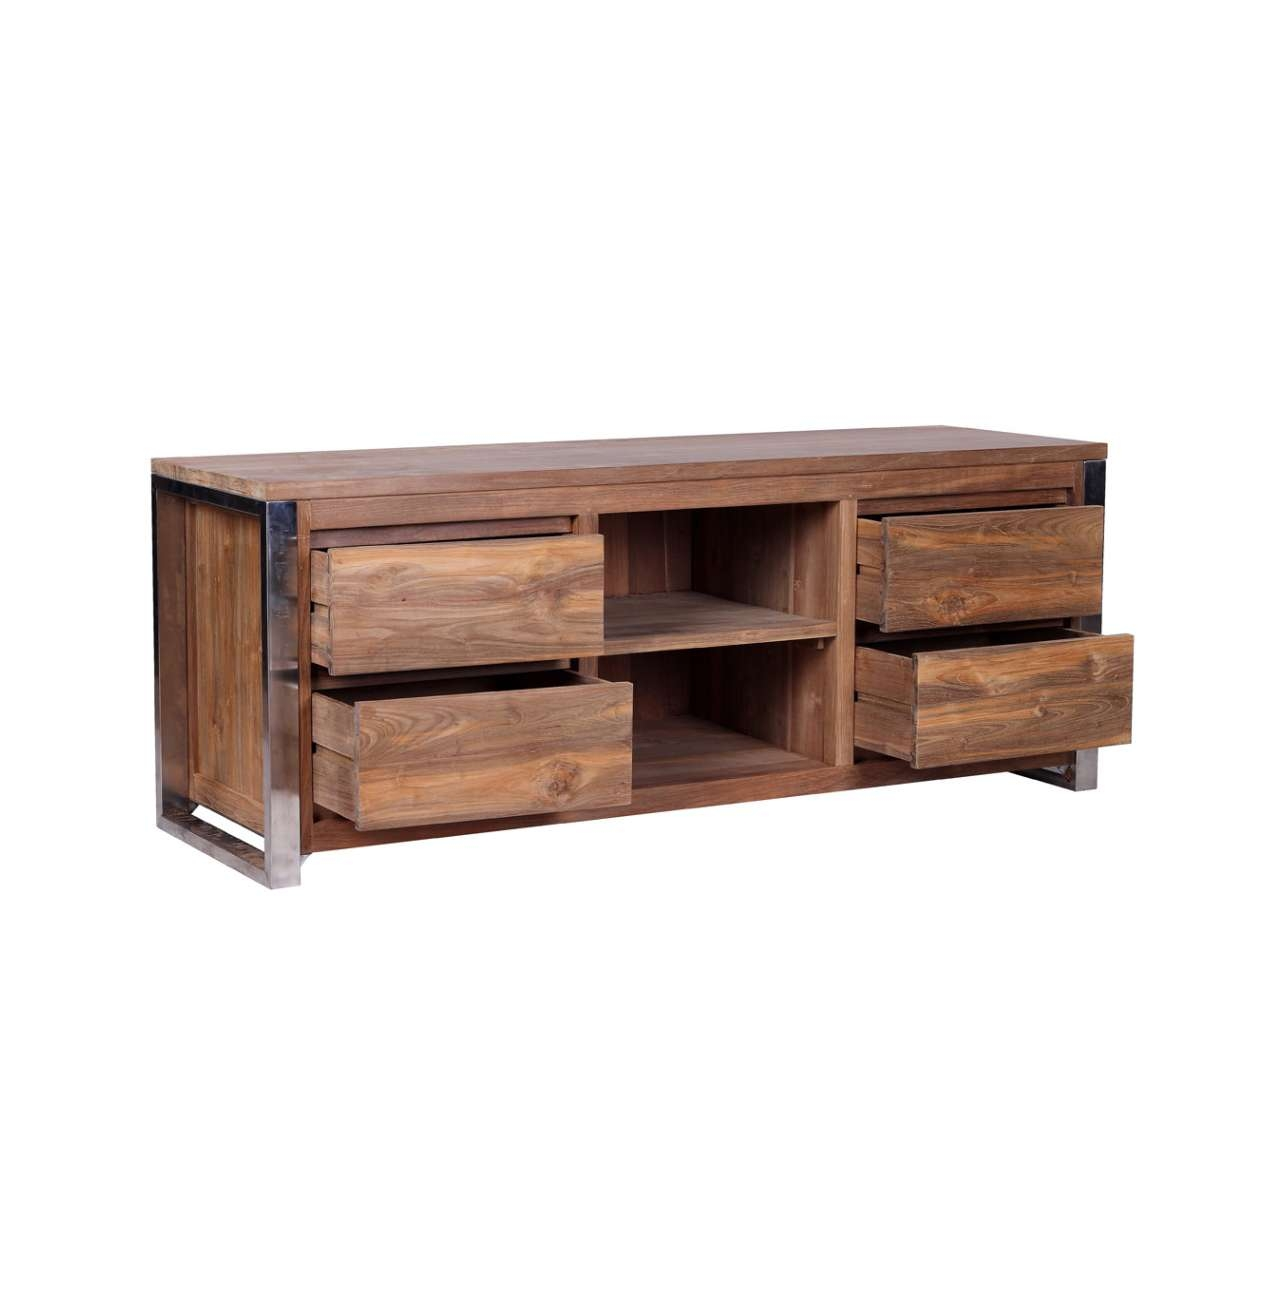 Rarem Reclaimed Wood Tv Stand – Reclaimed Teak And Stainless Steel Intended For Wood And Metal Tv Stands (View 9 of 15)